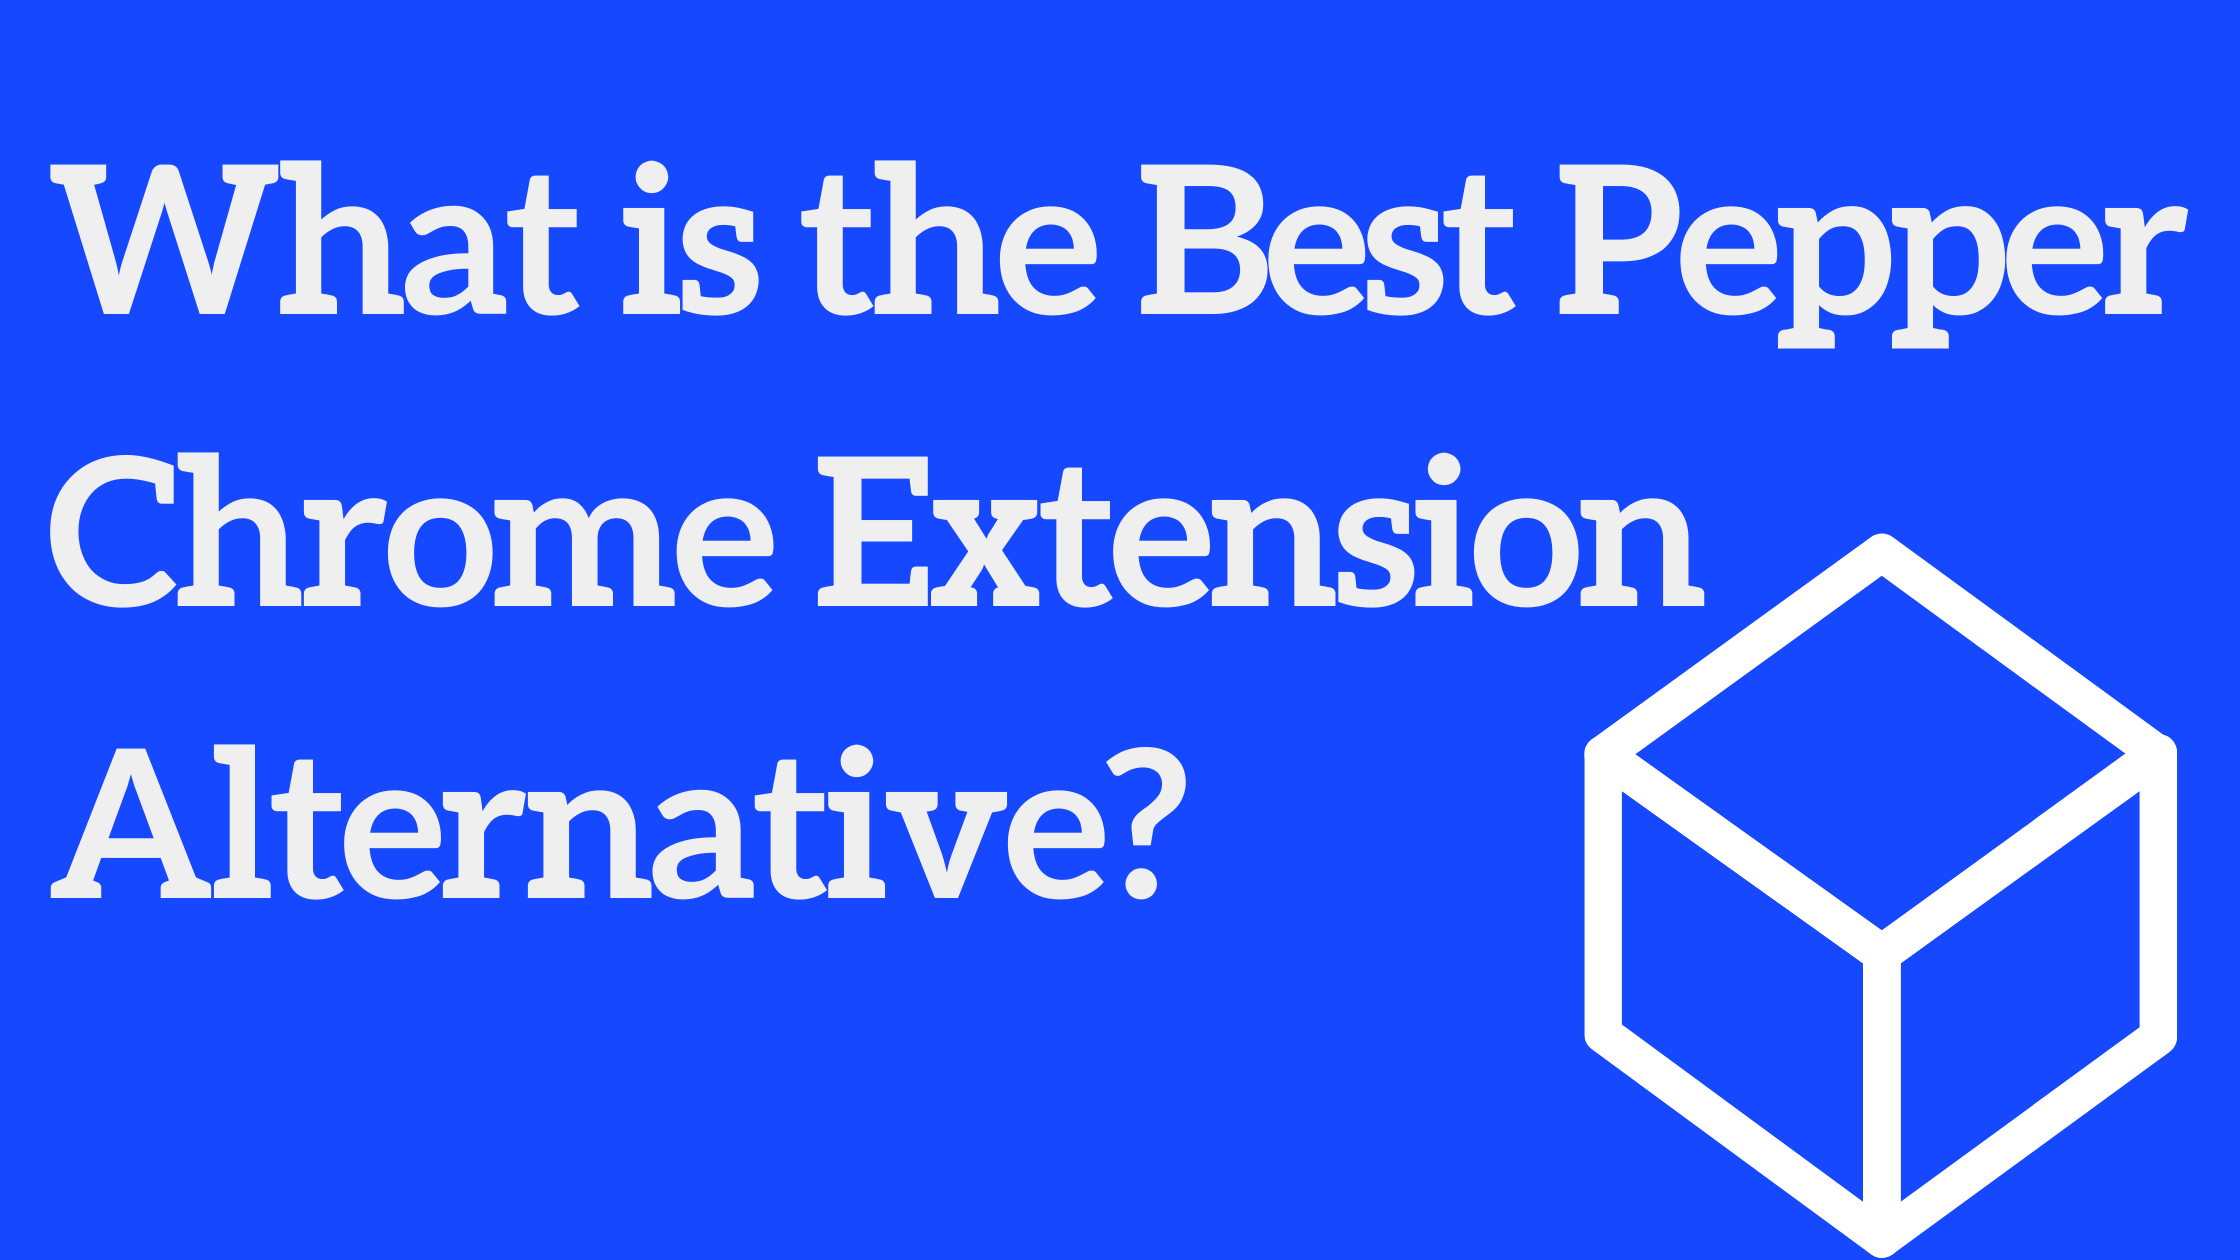 What is the Best Pepper Chrome Extension Alternative?